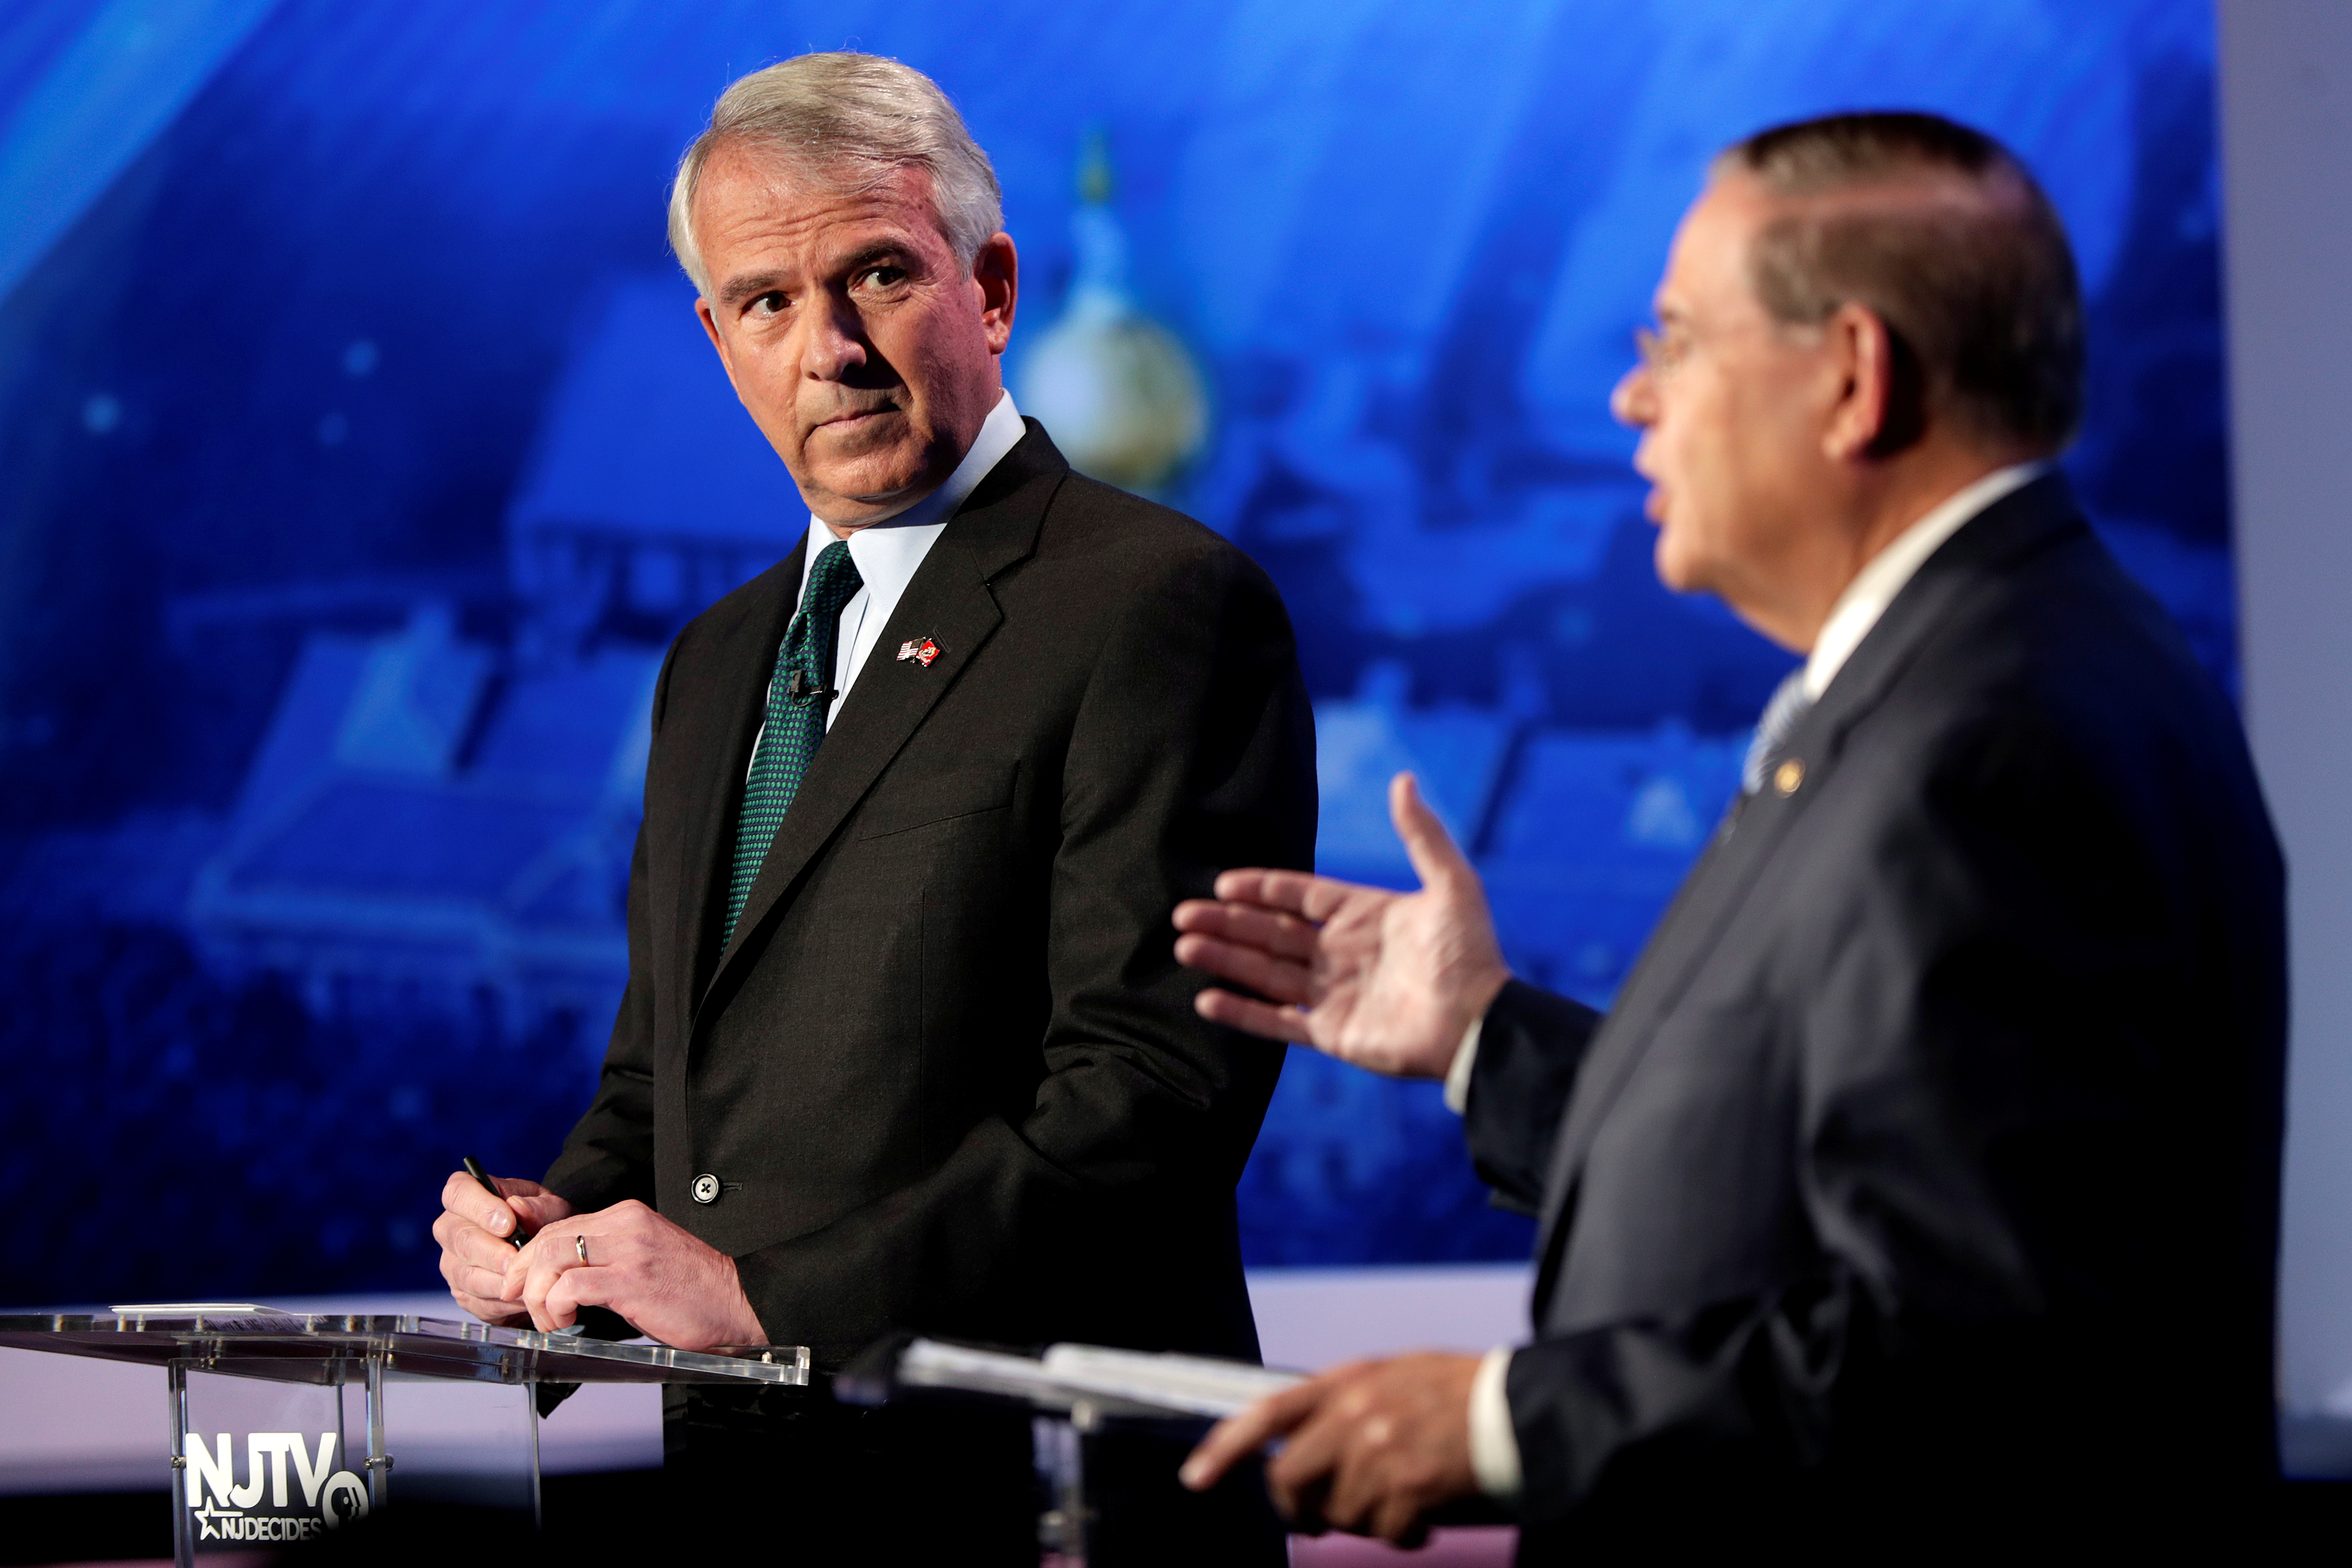 New Jersey Senator Bob Menendez answers a question as Republican Bob Hugin looks on during a debate in Newark, New Jersey. Julio Cortez/Pool via Reuters